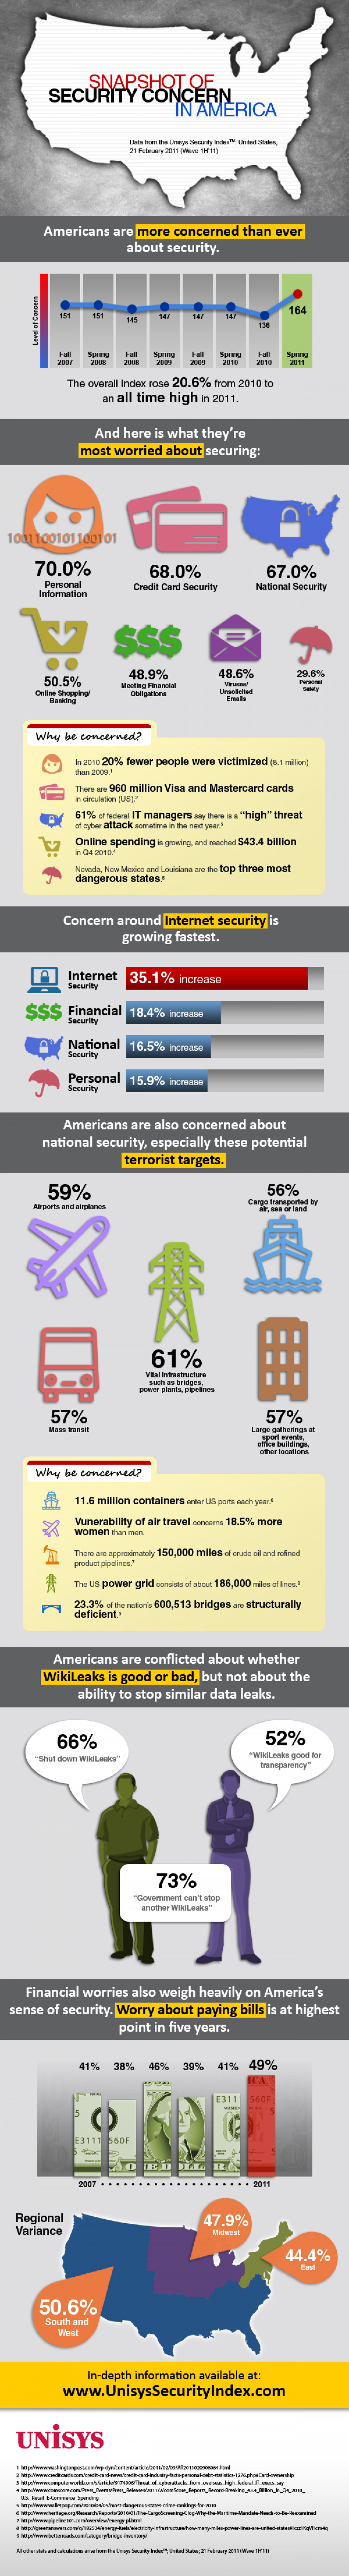 Snapshot of Security in America Infographic